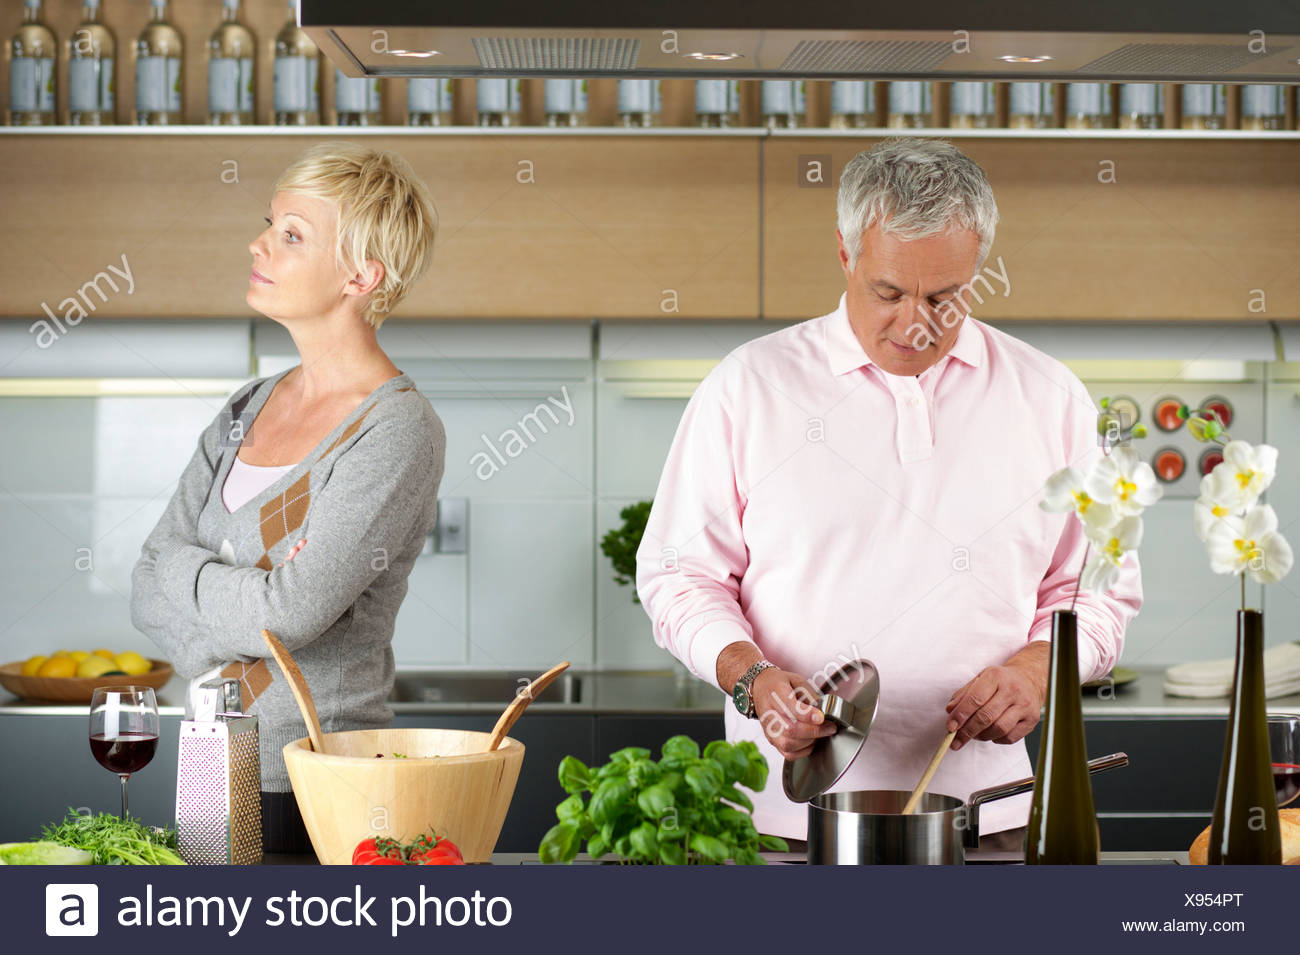 Blond woman turned away from a man who is cooking - Stock Image